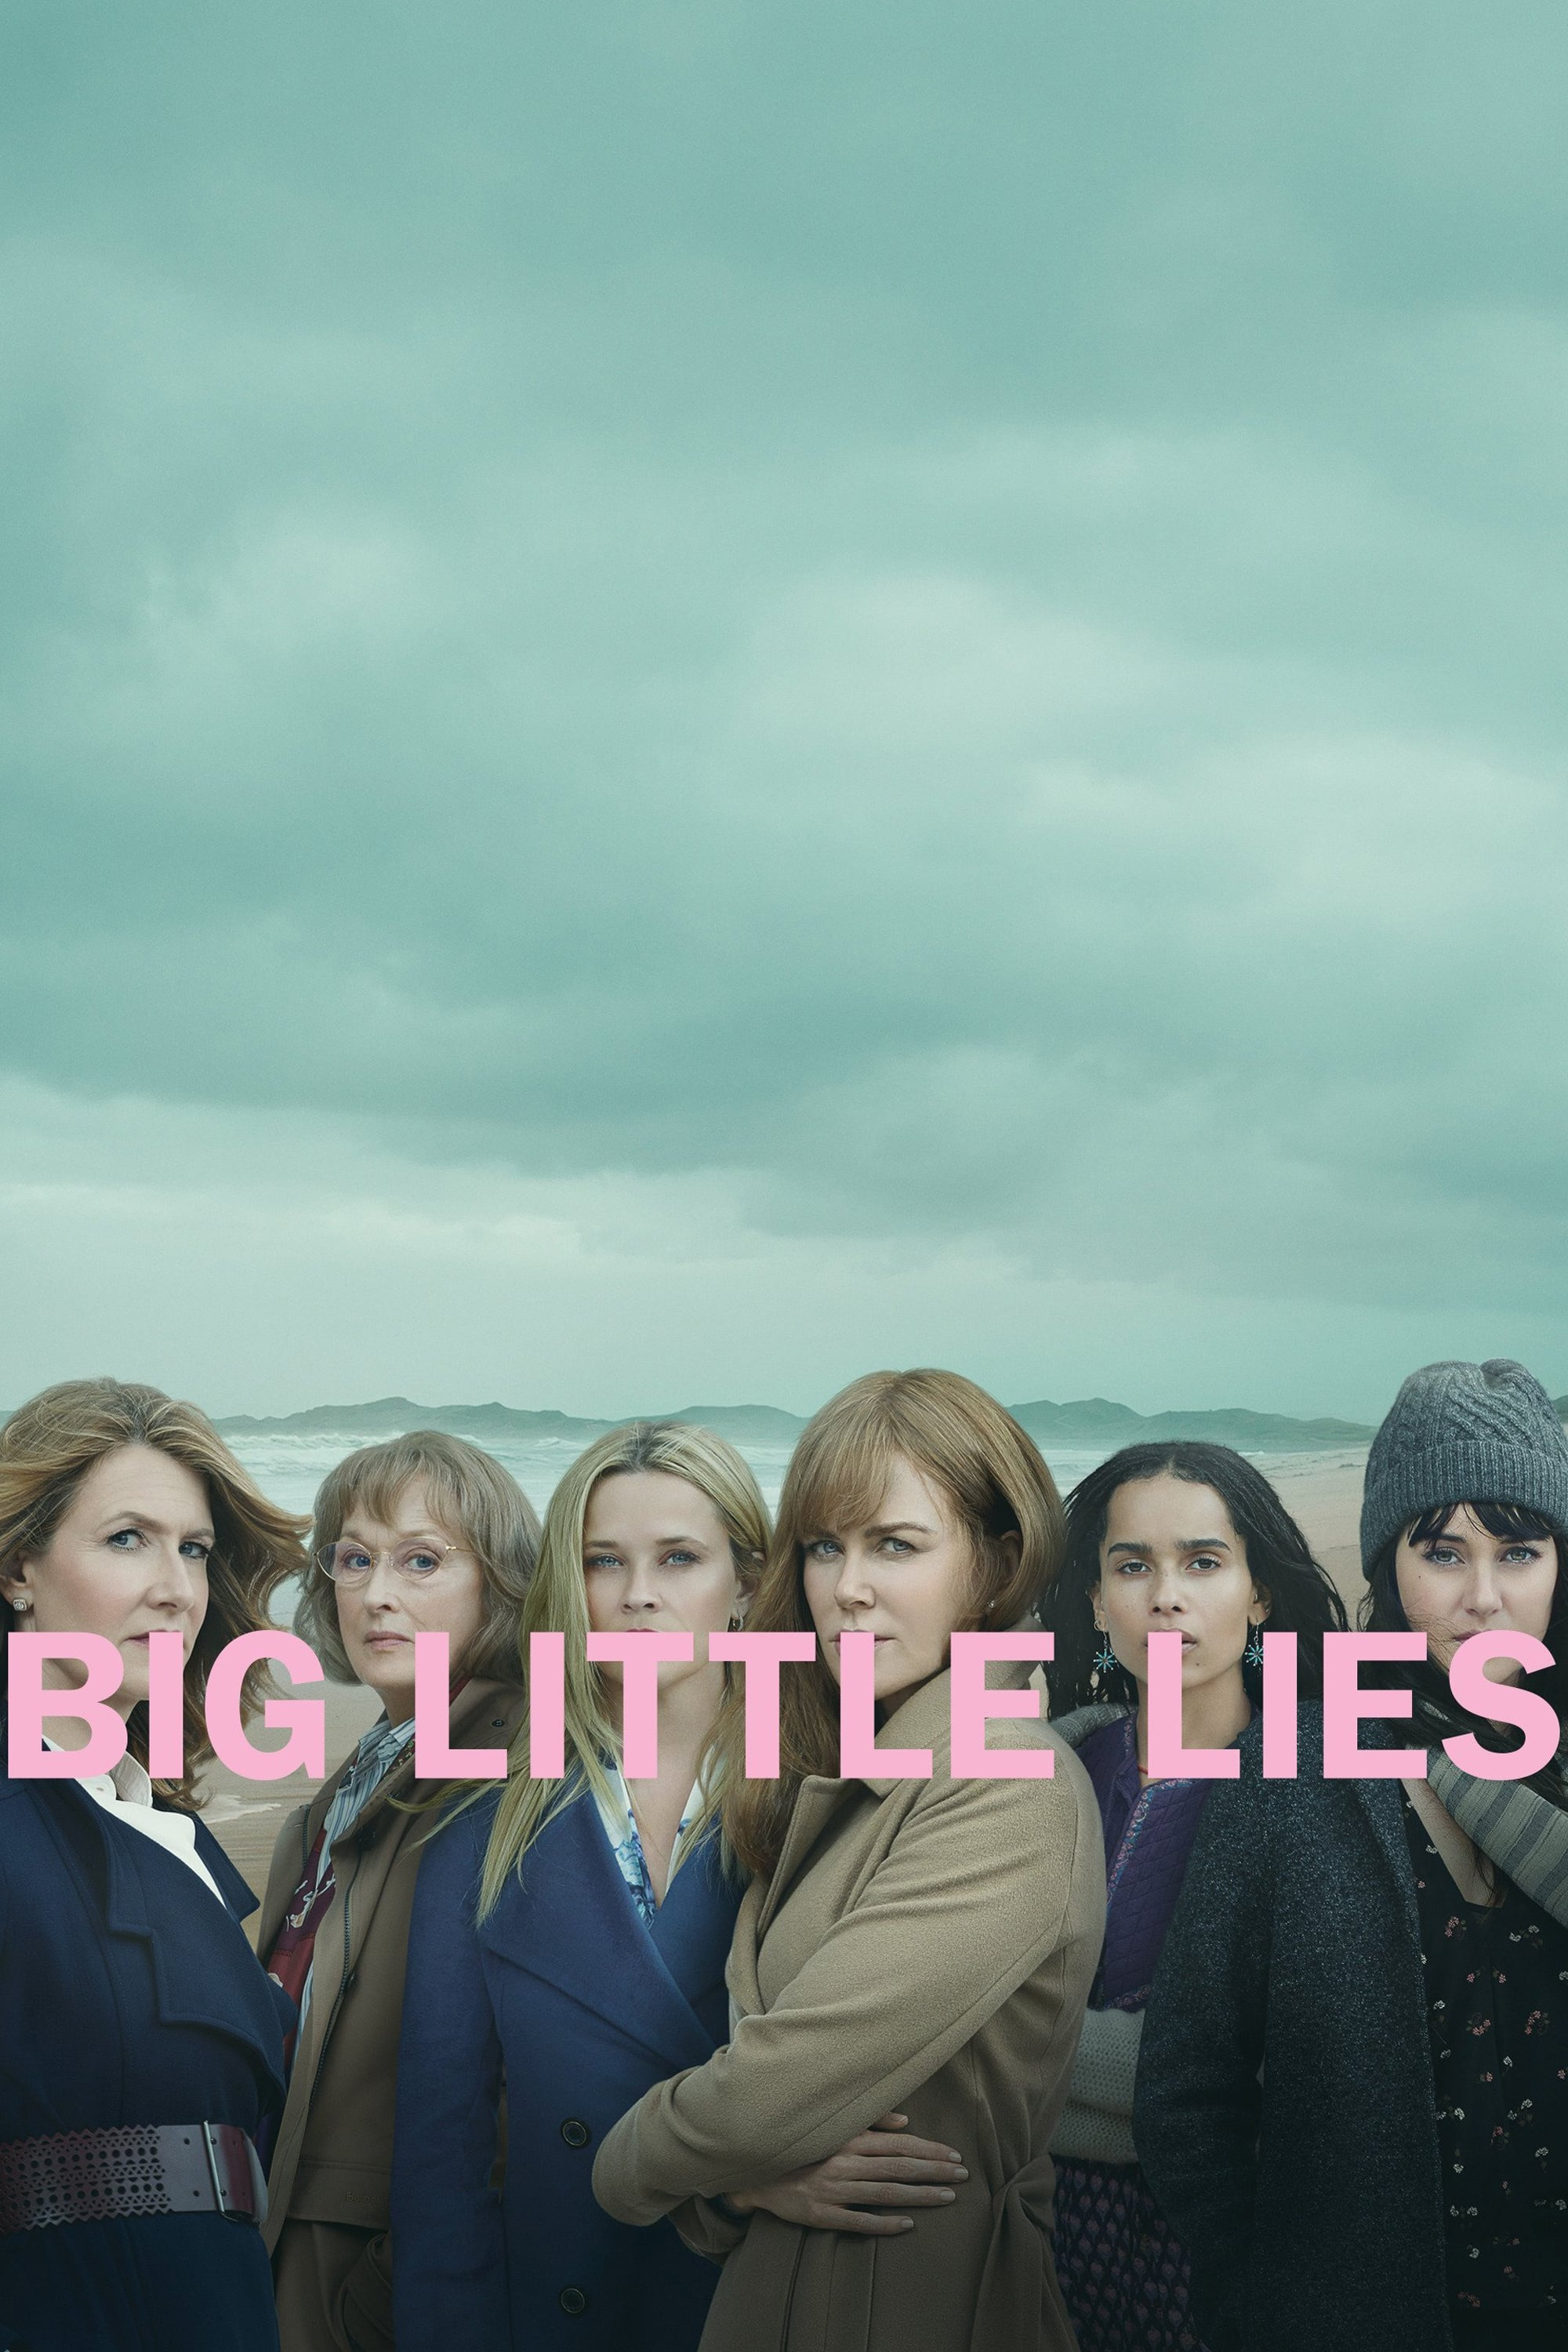 Caratula de Big Little Lies (Big Little Lies)